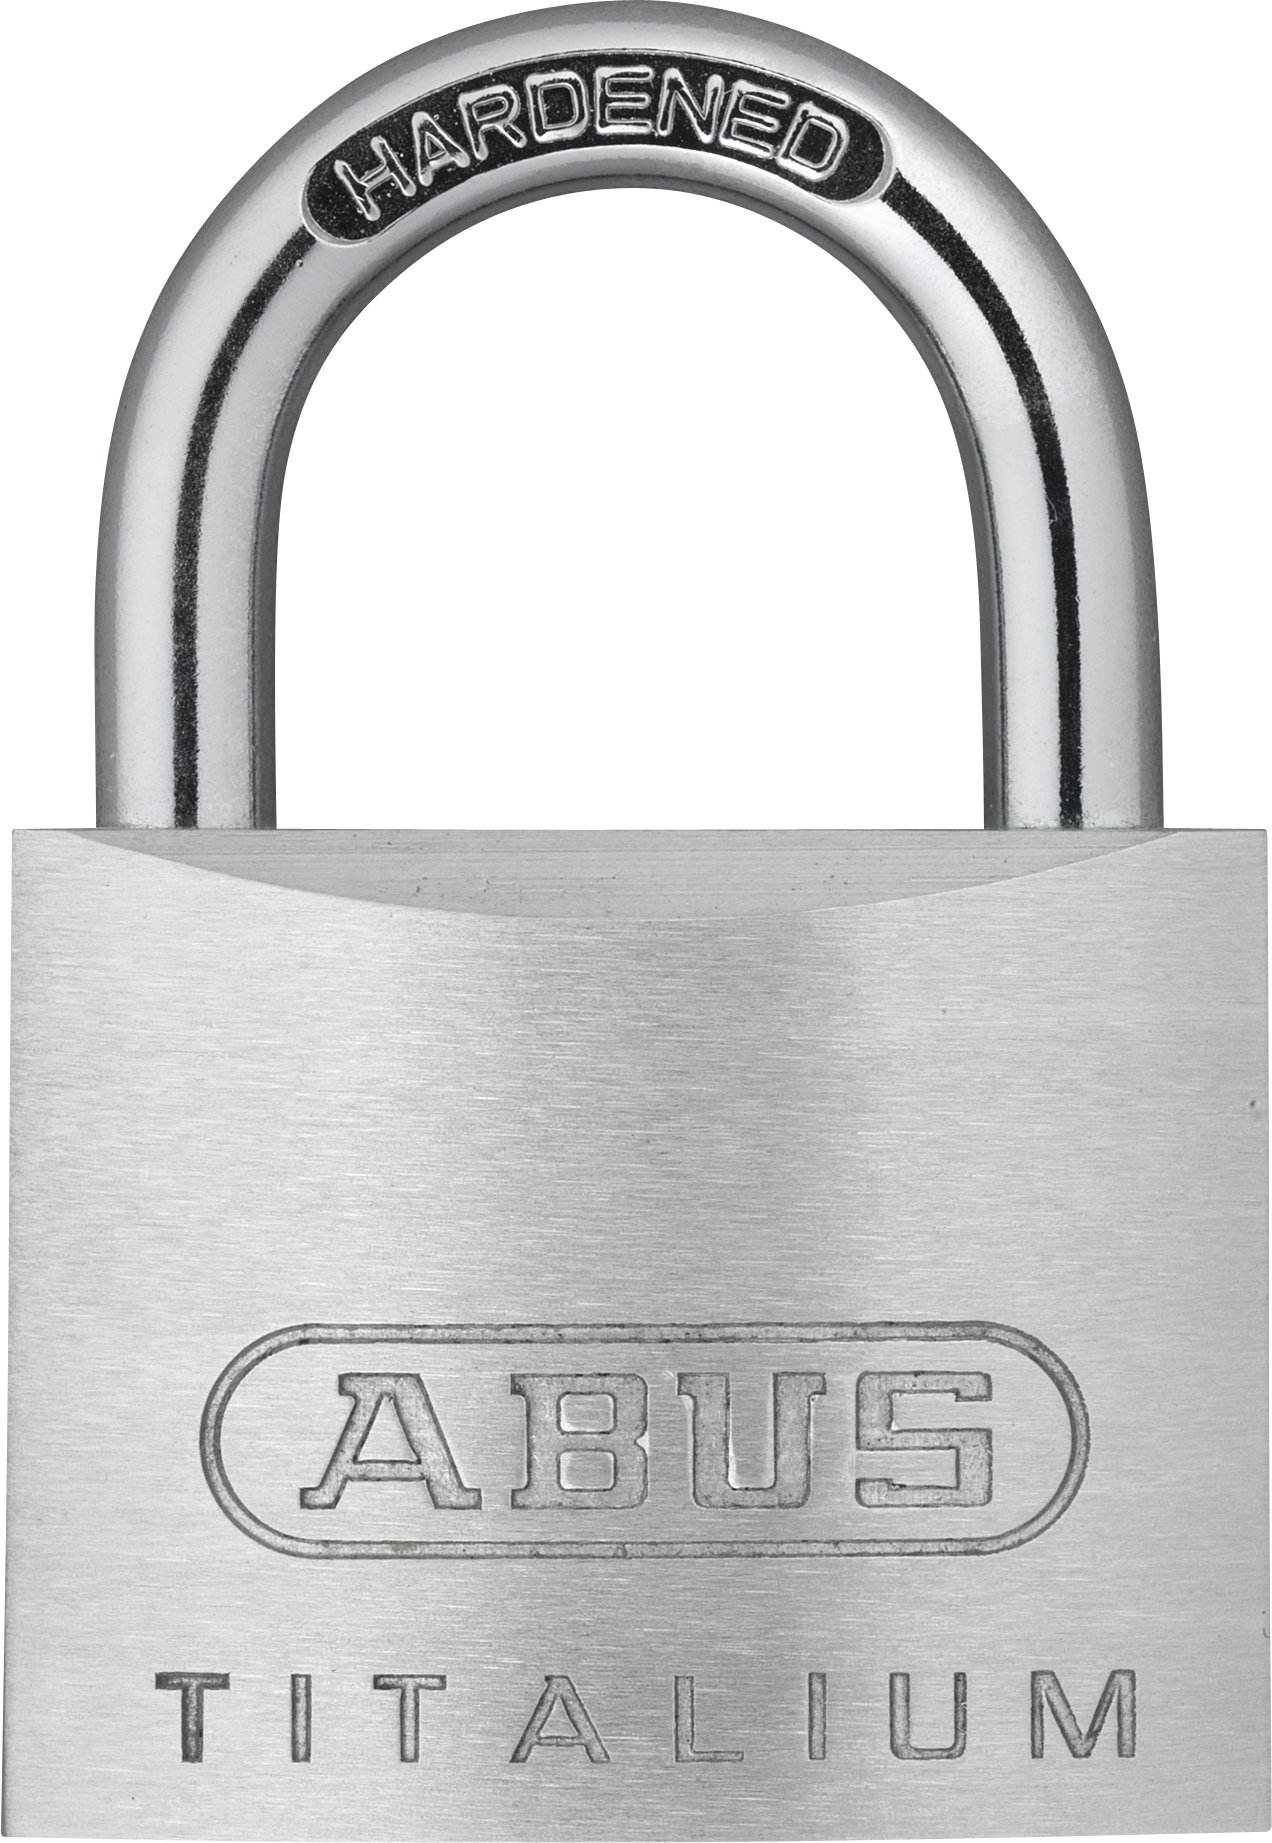 ABUS 54TI/35 KD C Titalium Aluminum Alloy Keyed Different Padlock 1-3/8-Inch with 3/16-Inch Diameter Hardened Steel Shackle